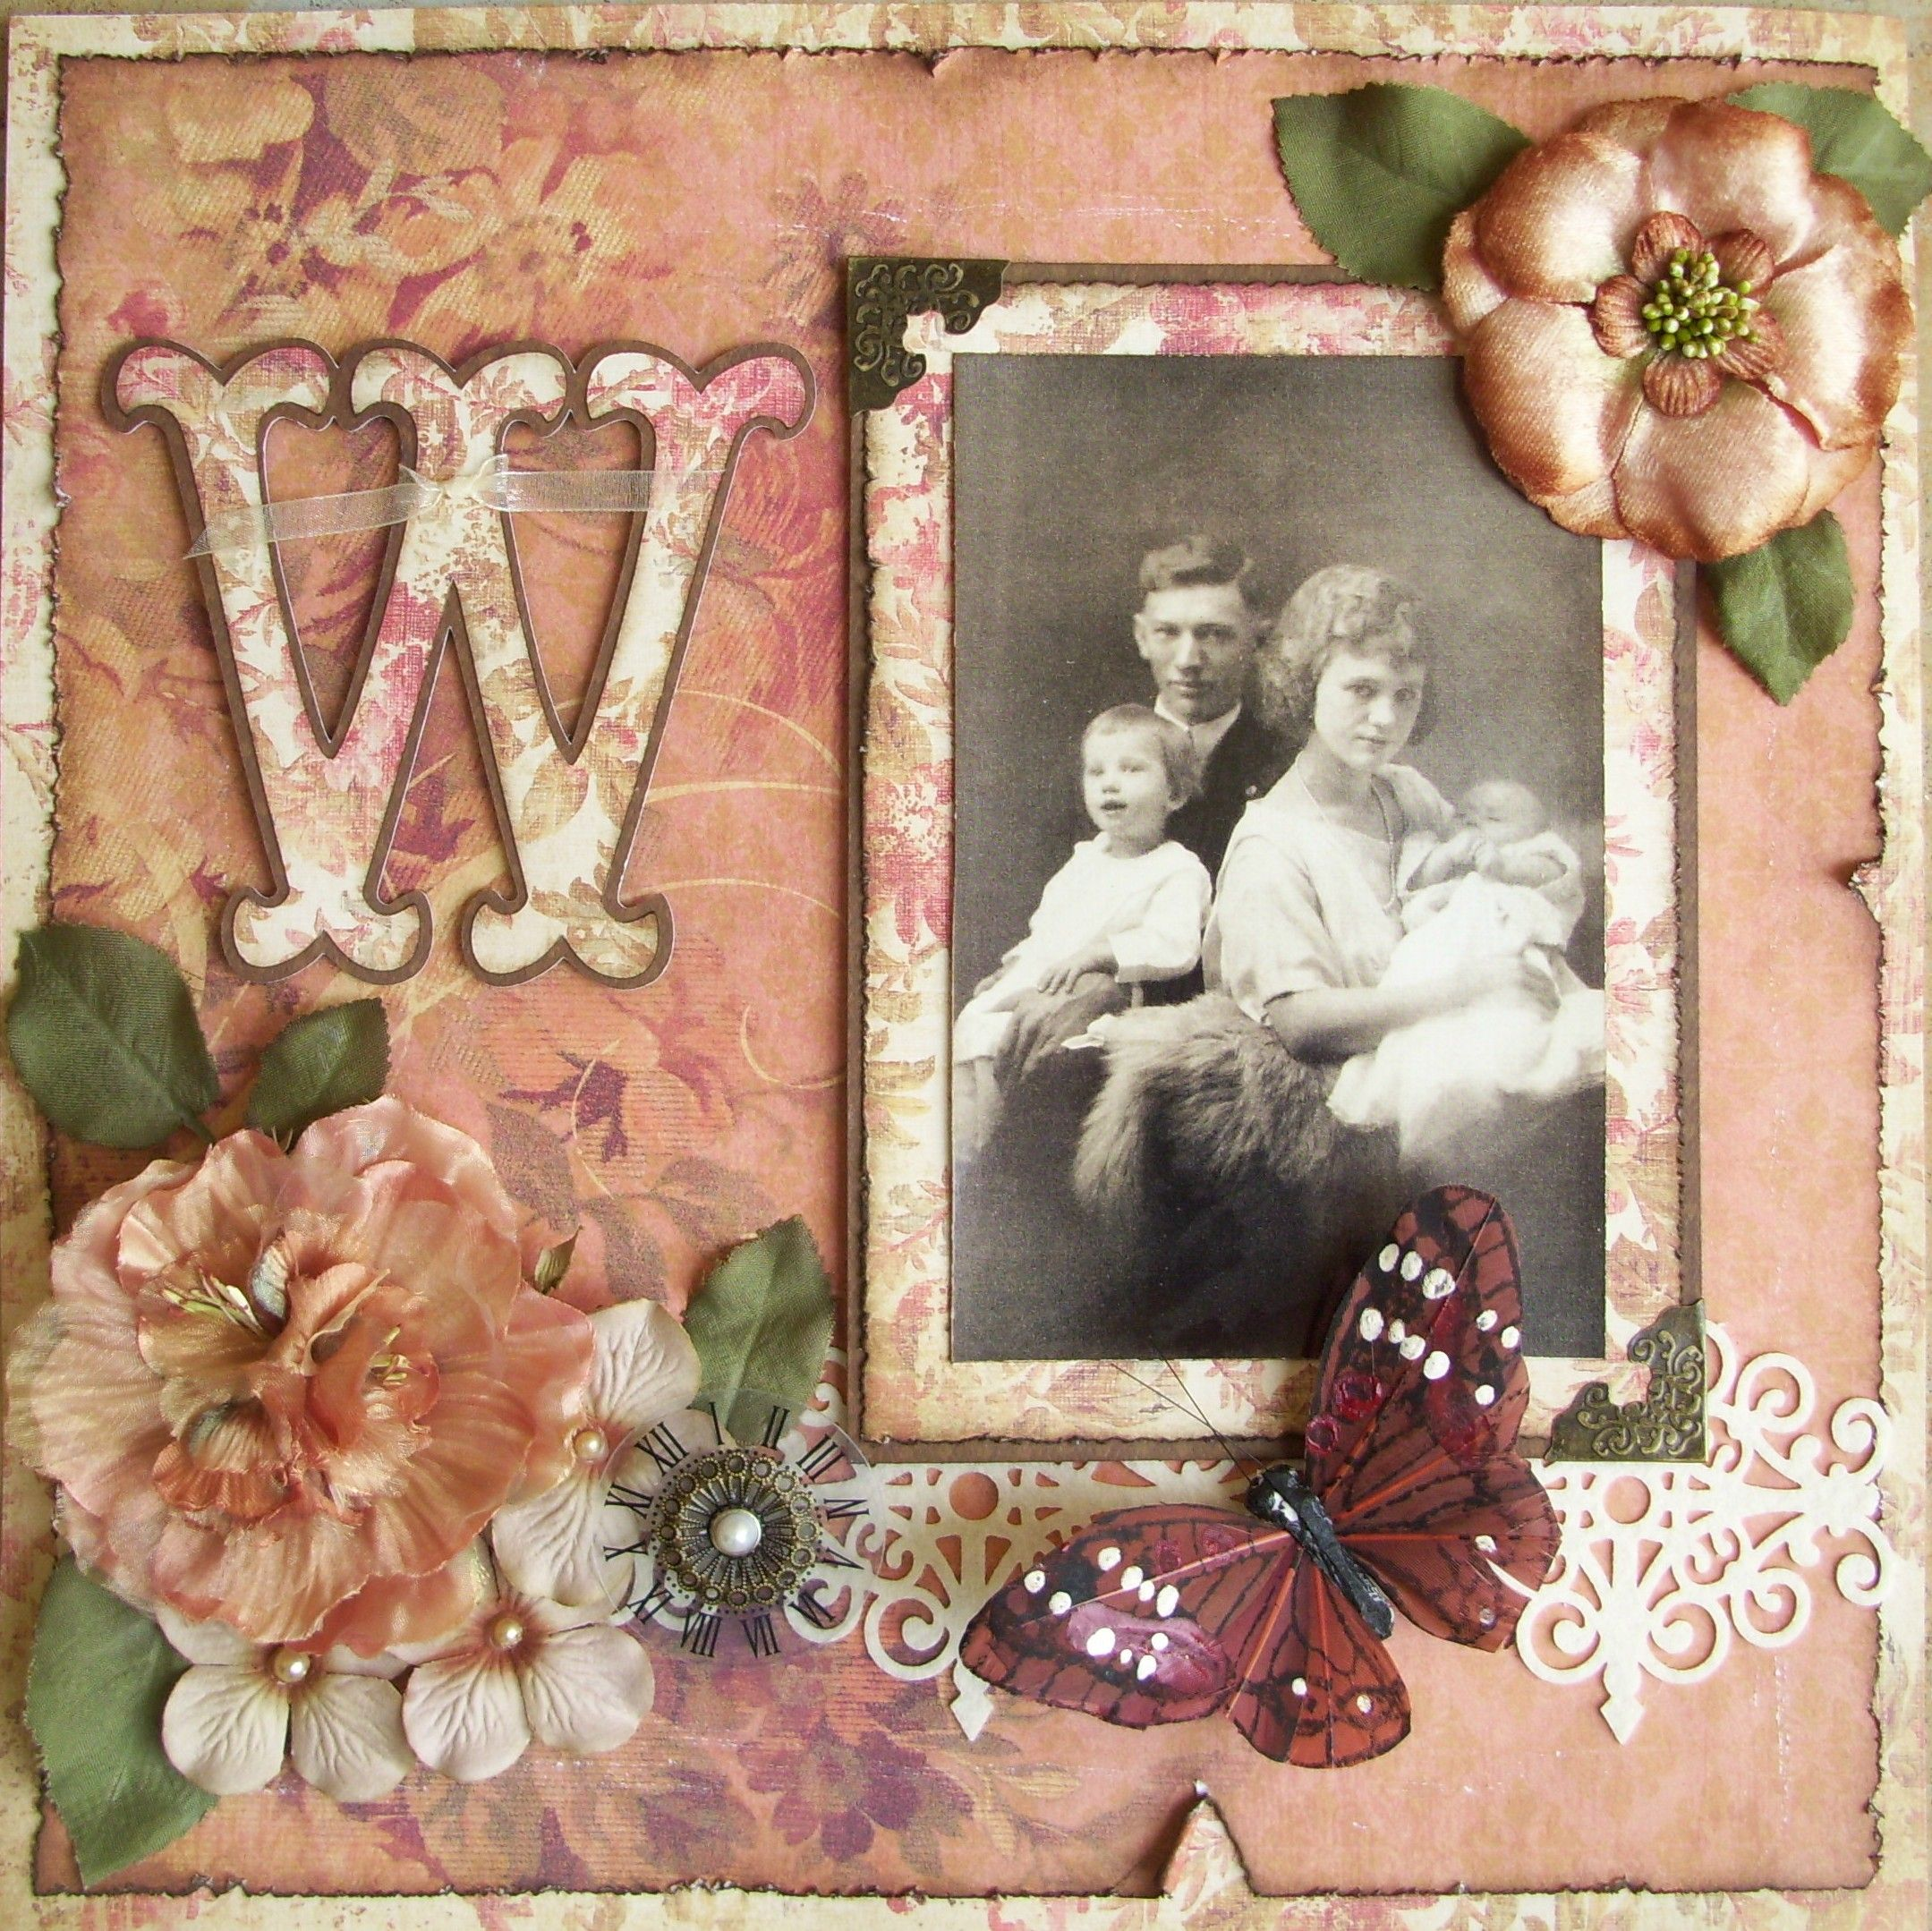 The Welch Family ~ An elegant heritage page with the perfect balance of 'vintage bling' and simplicity. Love how the embellishment paper used for the frame, monogram and distressed edging subtly contrasts to the background paper.